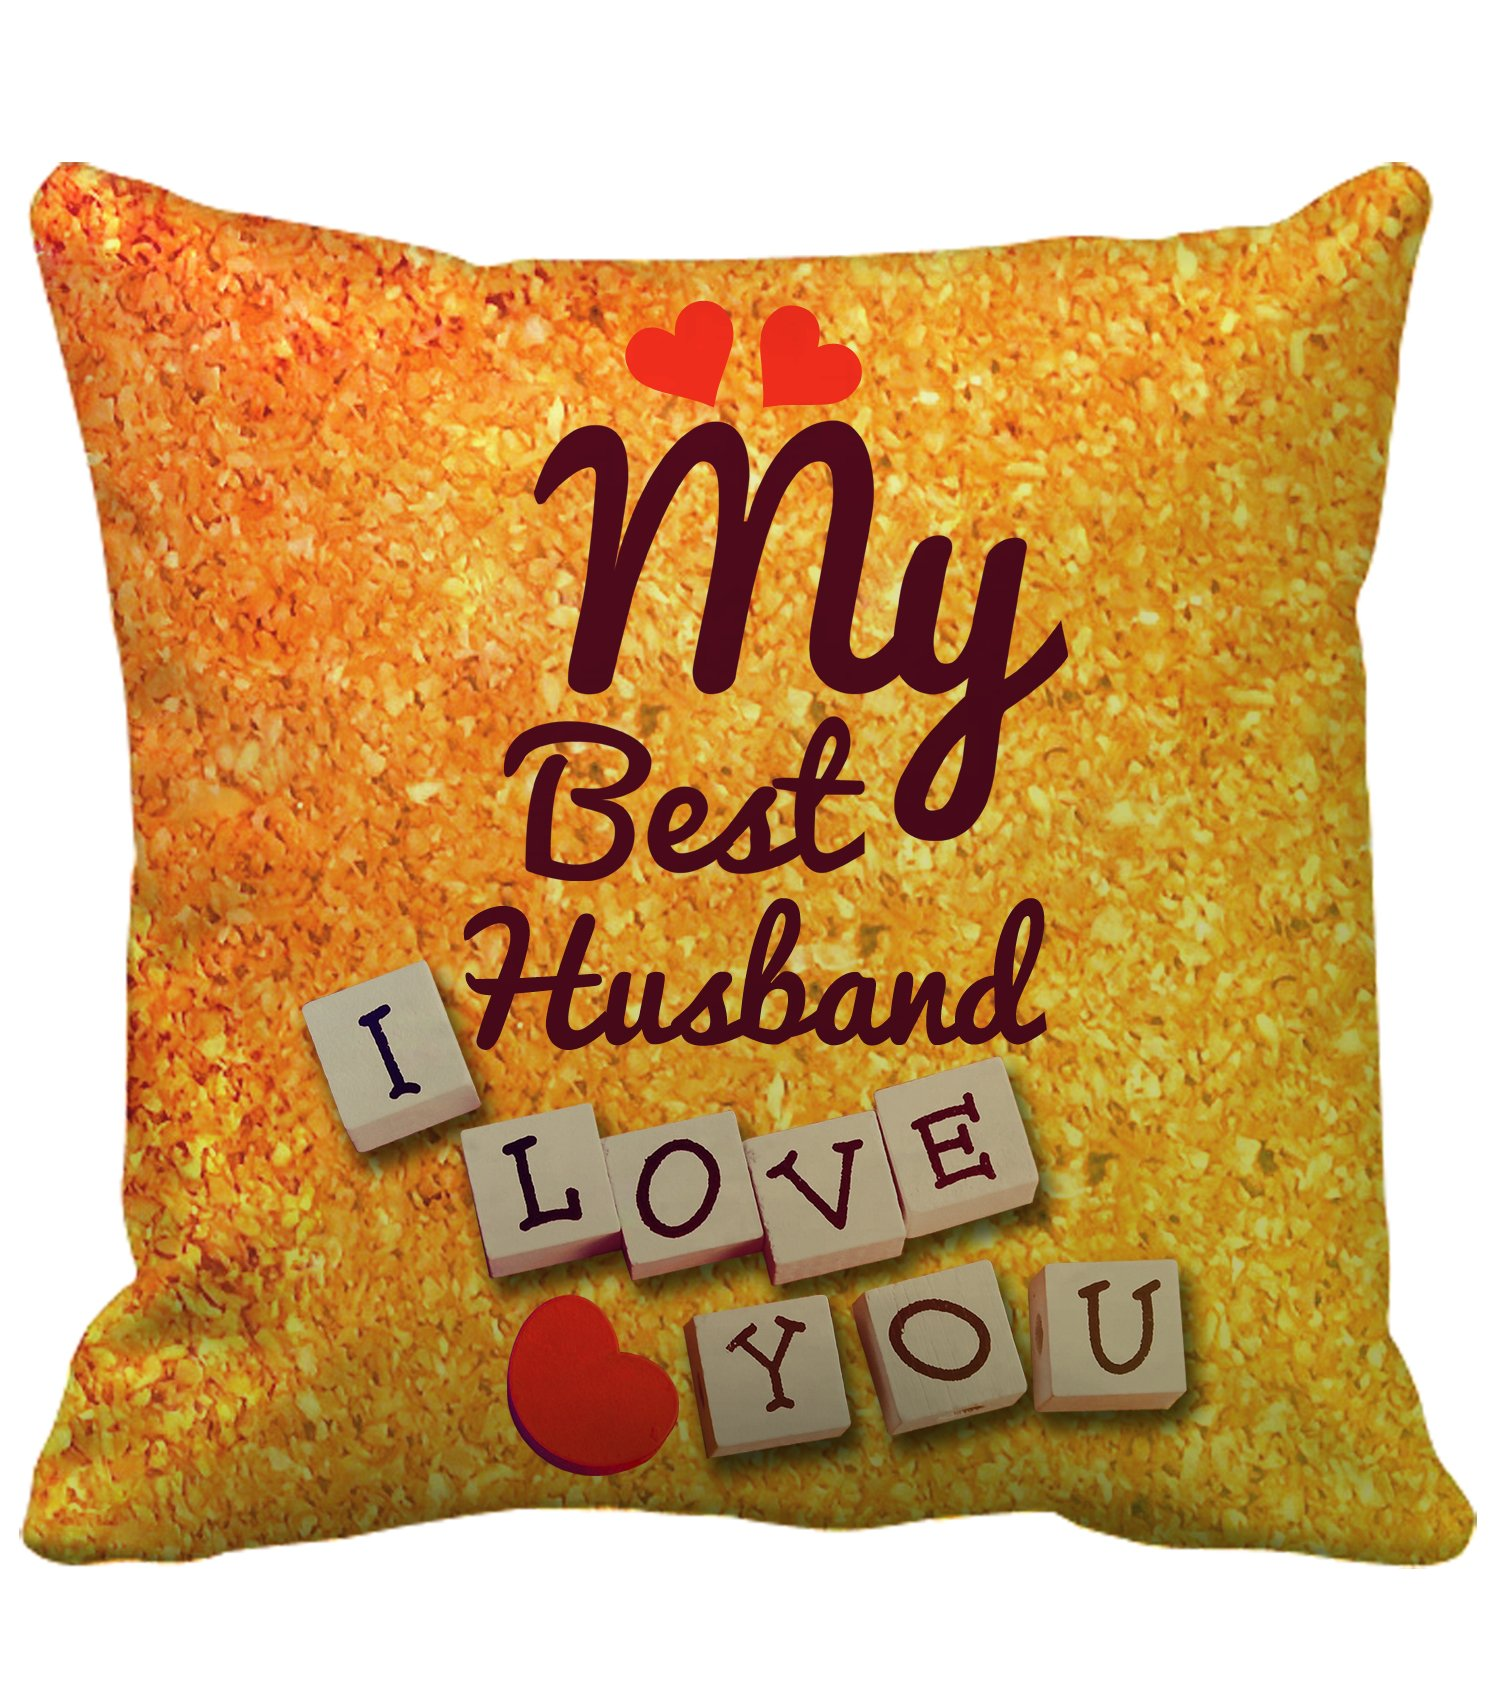 Wedding Gifts For Husband Buy Wedding Gifts For Husband Online At